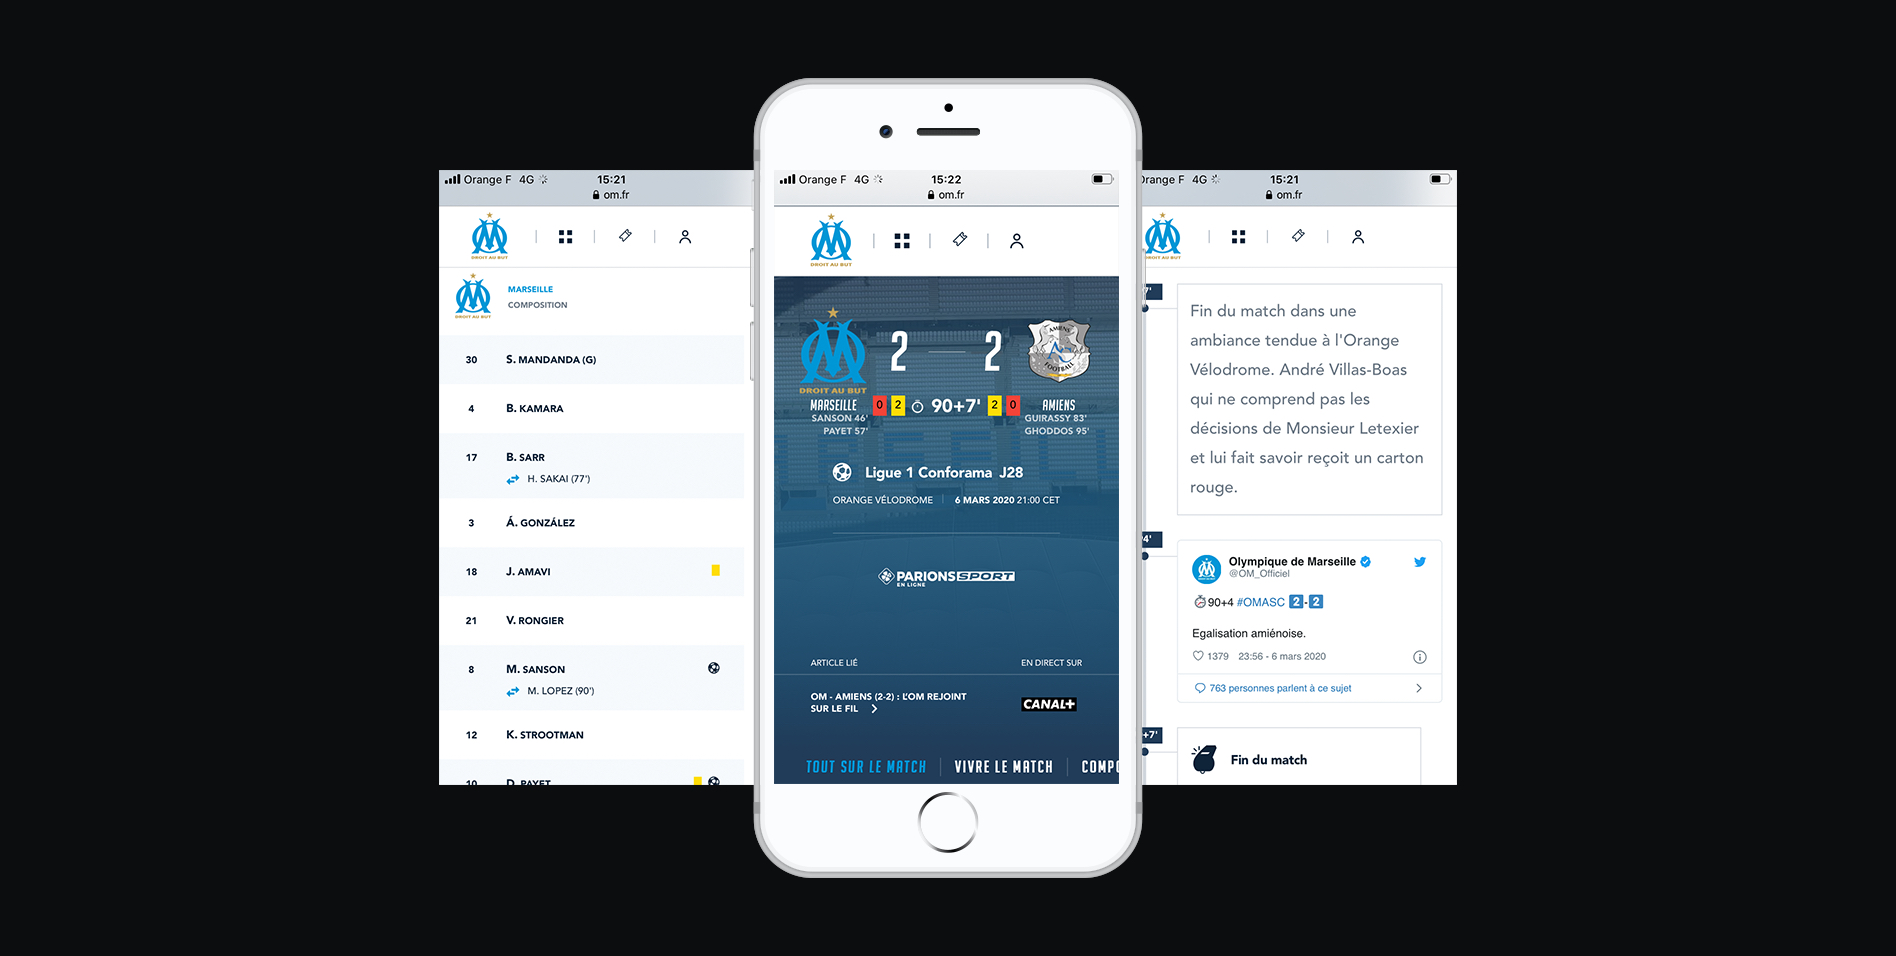 Three screenshots of OM responsive website on a smartphone